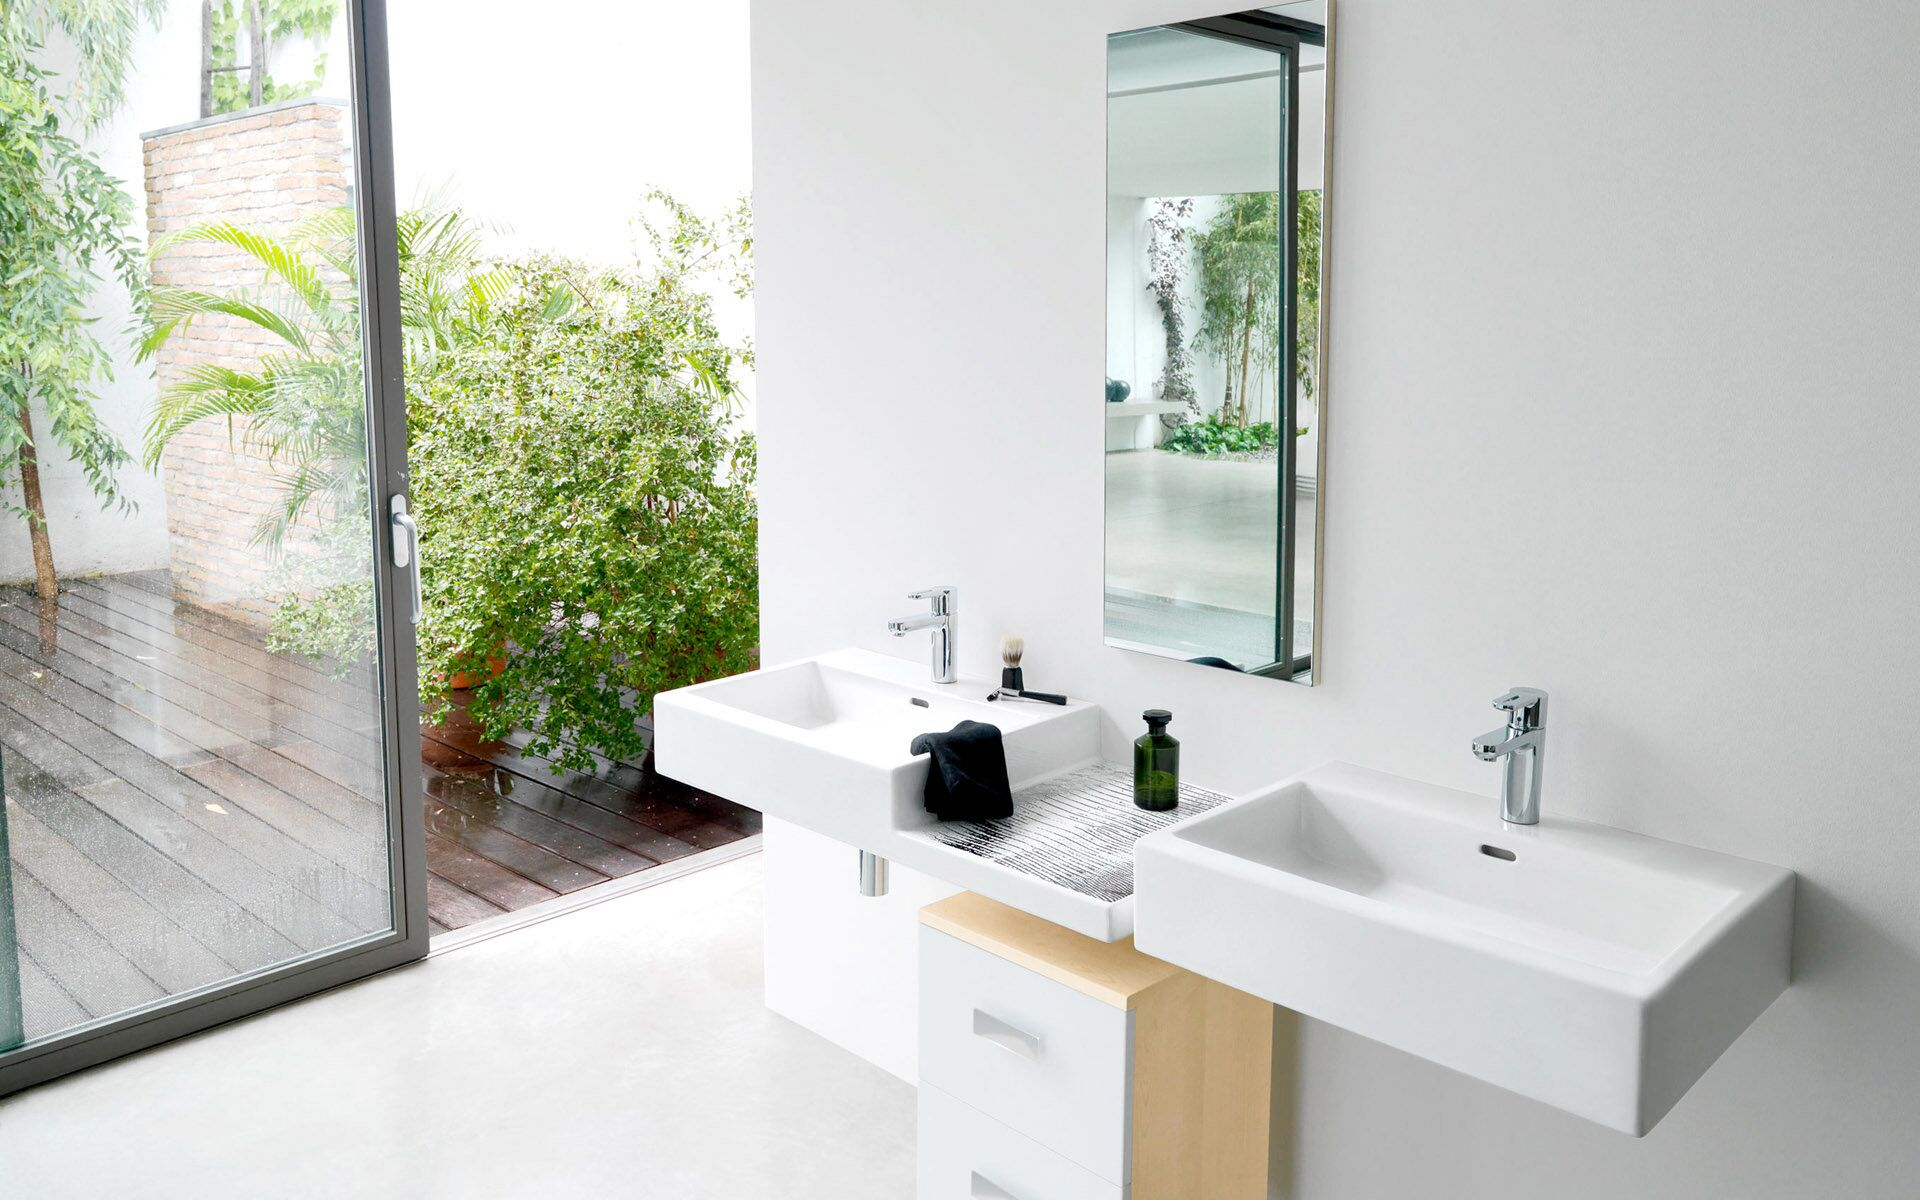 stable wall mounted basin luxury shop for washroom-15